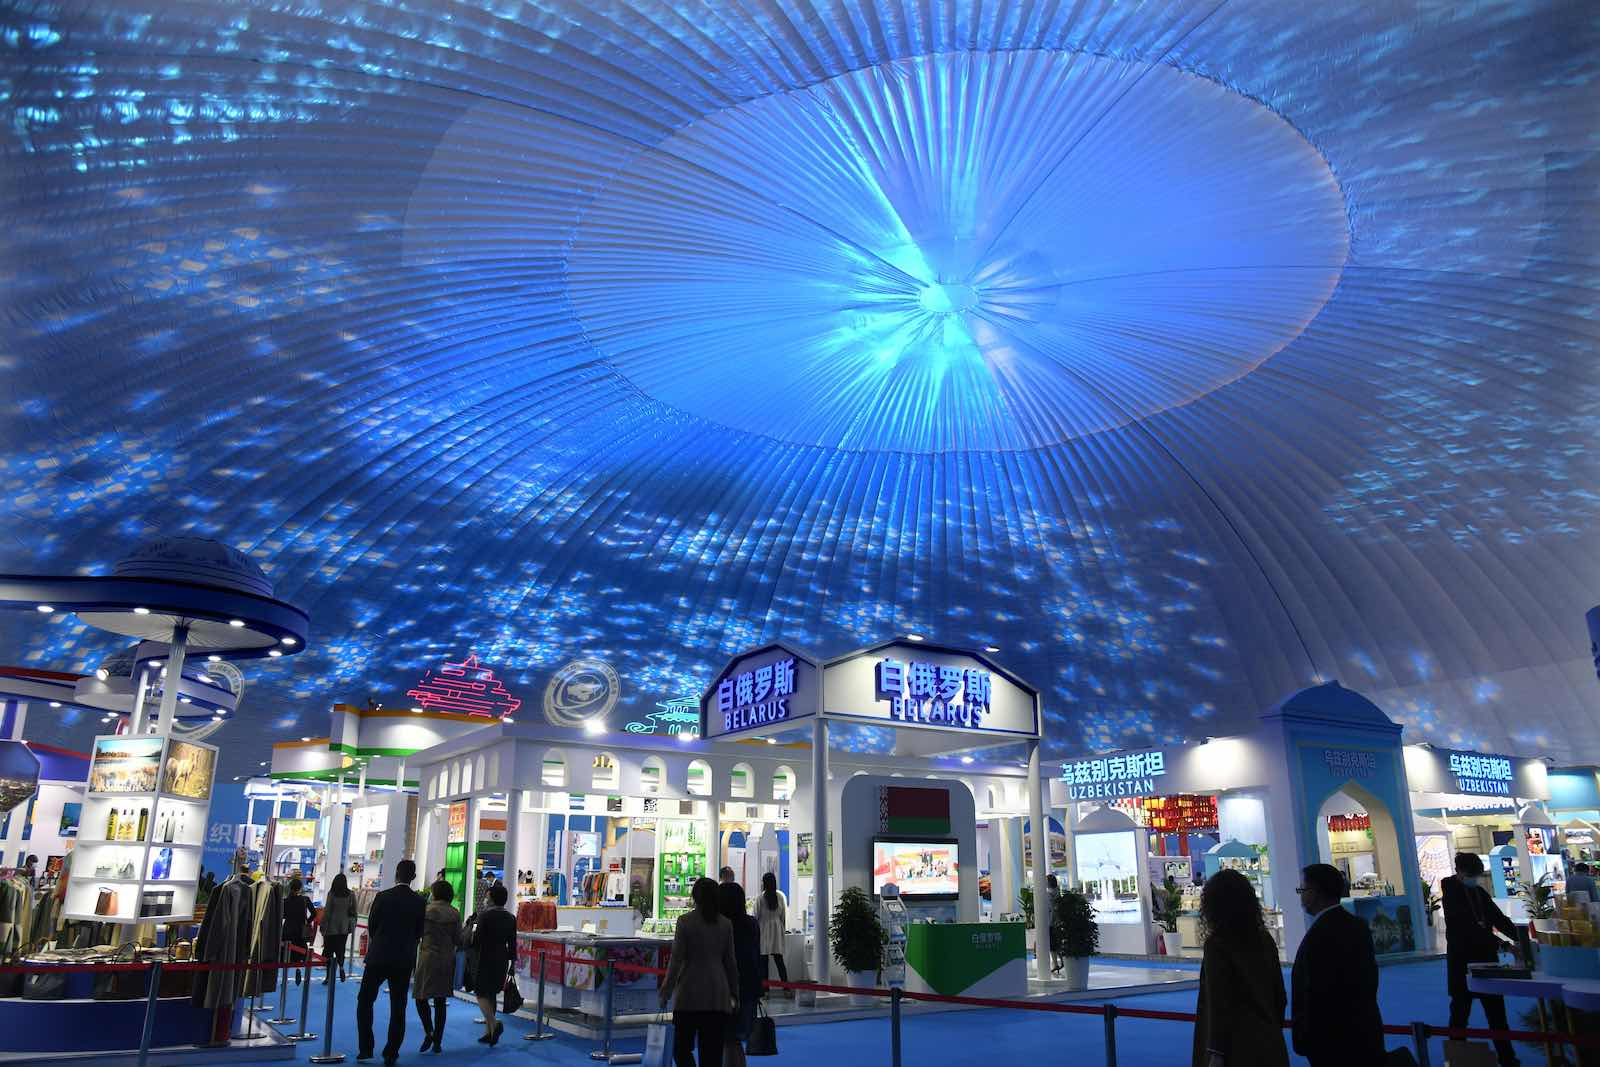 The Shanghai Cooperation Organization International Investment and Trade Expo in Qingdao, in China's Shandong Province, 26 April 2021 (Li Ziheng/Xinhua via Getty Images)